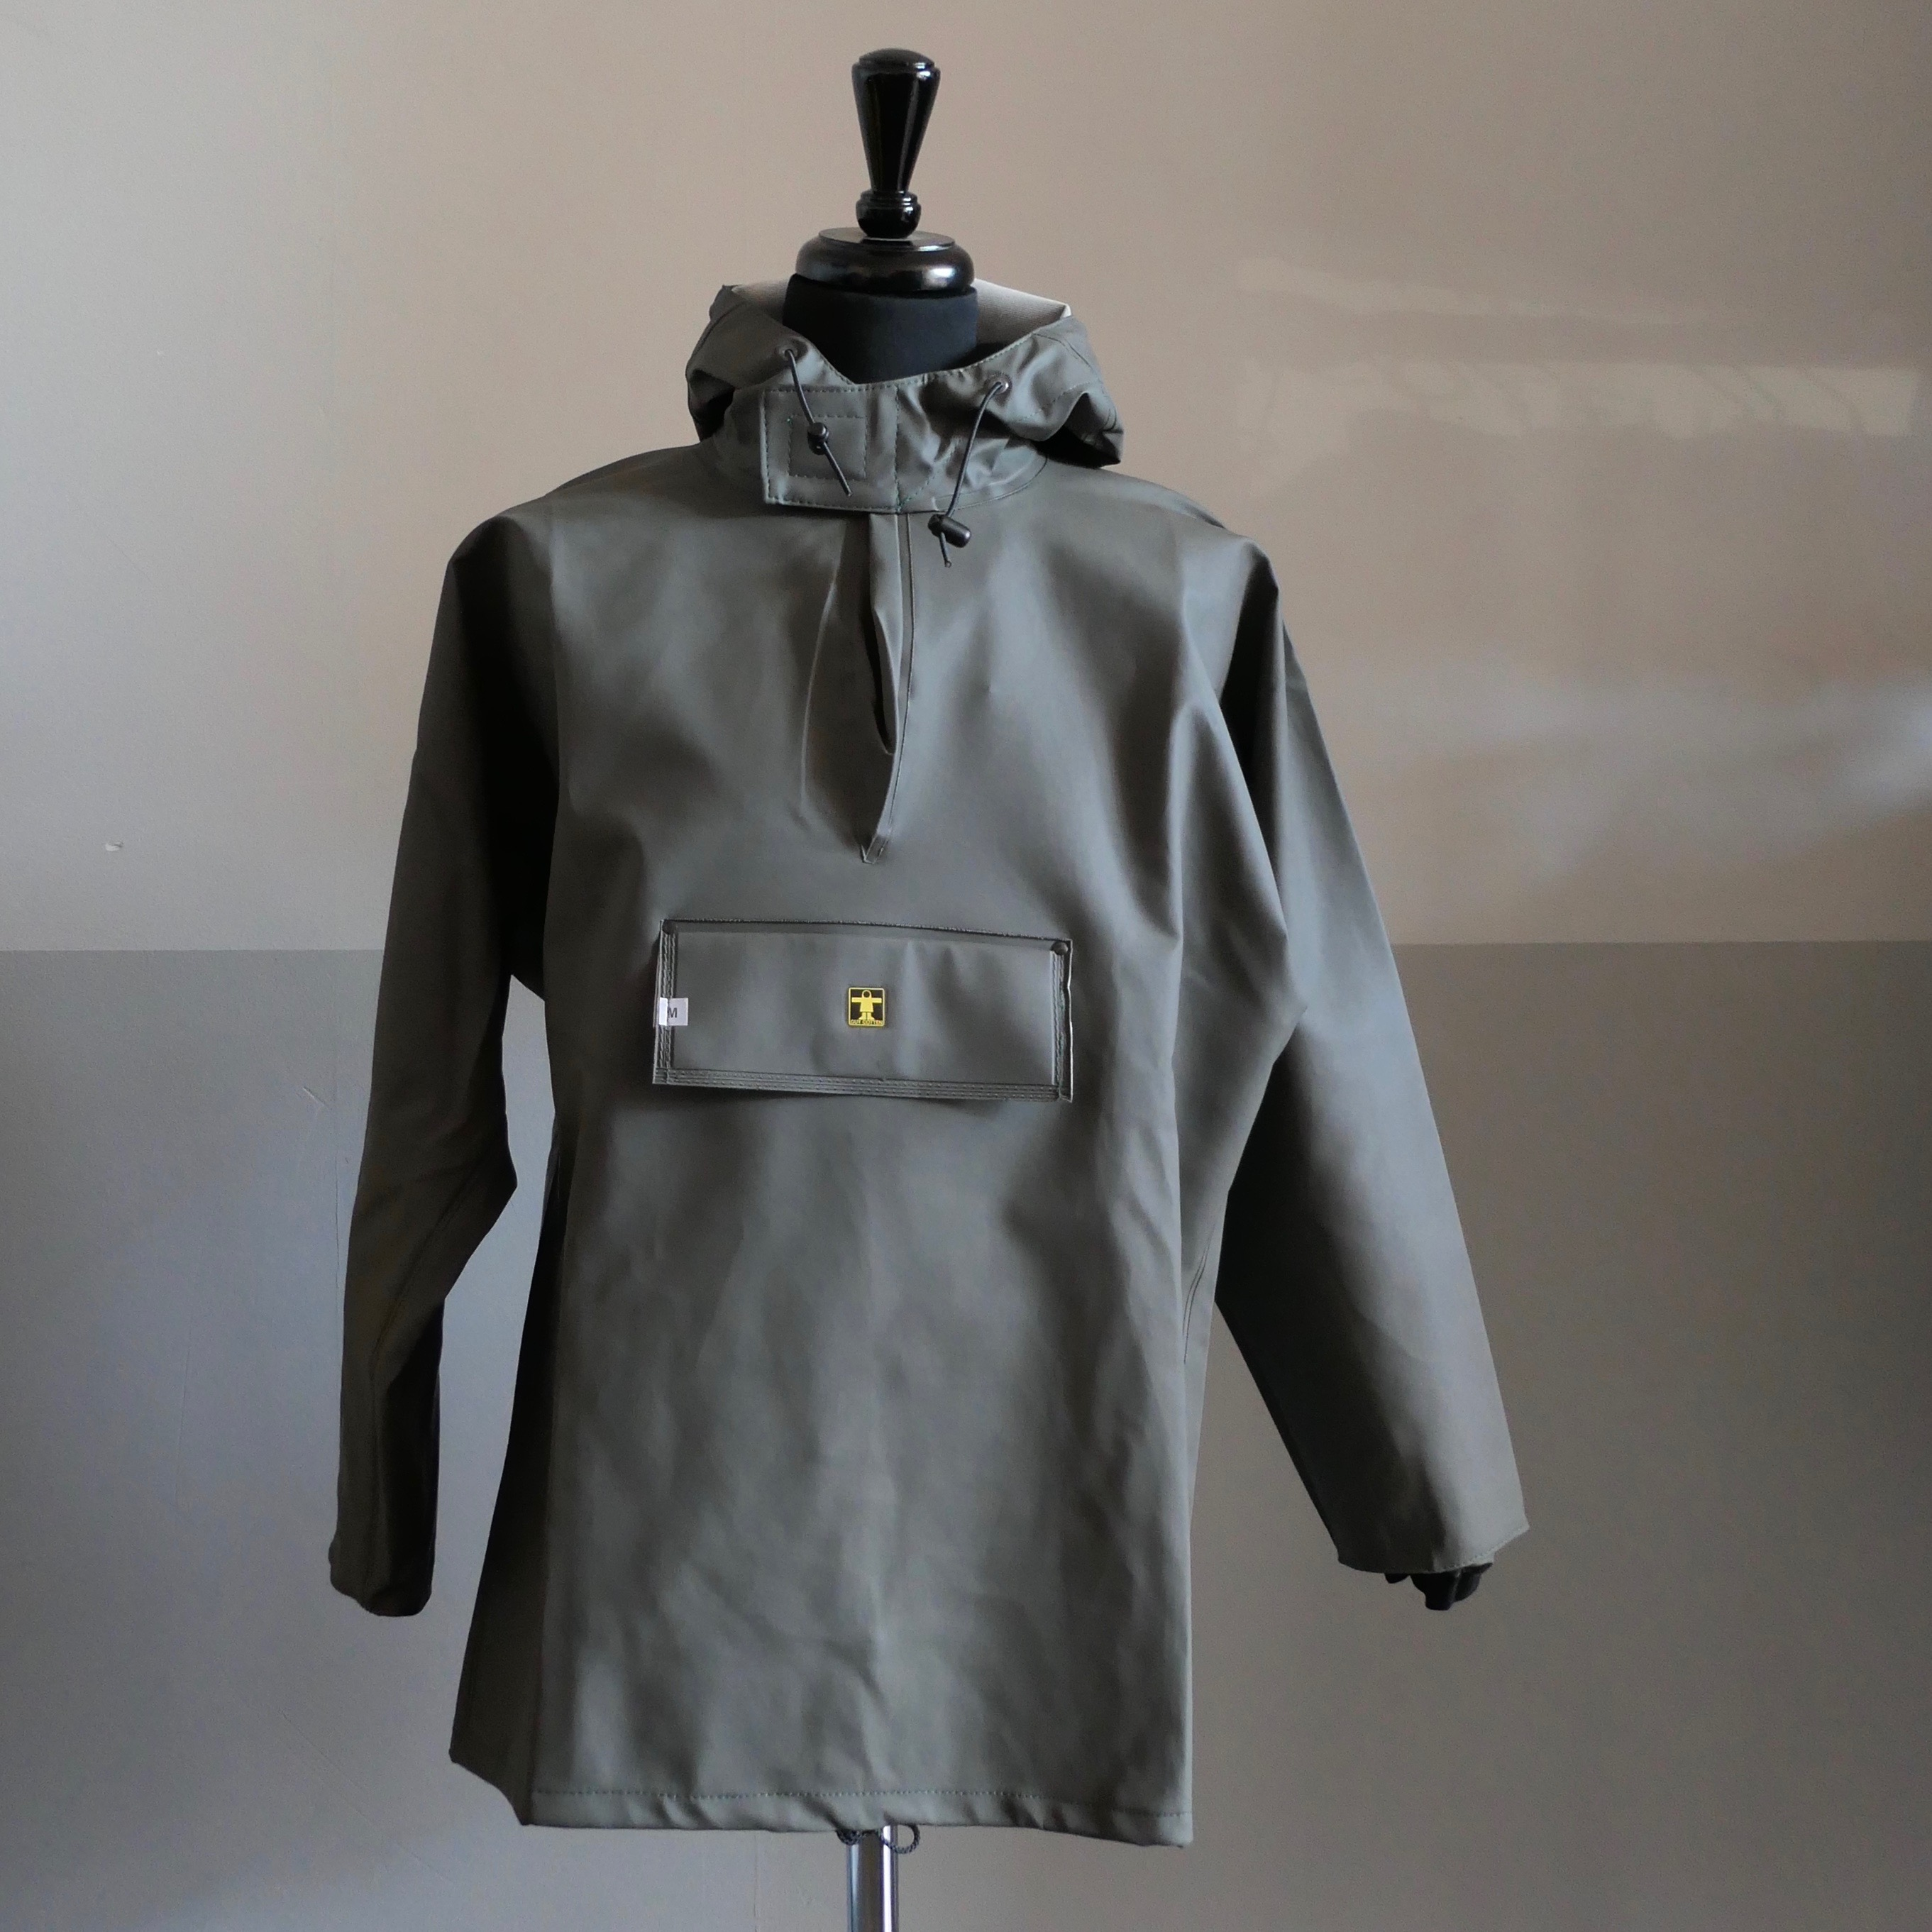 Heavy duty sailor smock Green/Grey